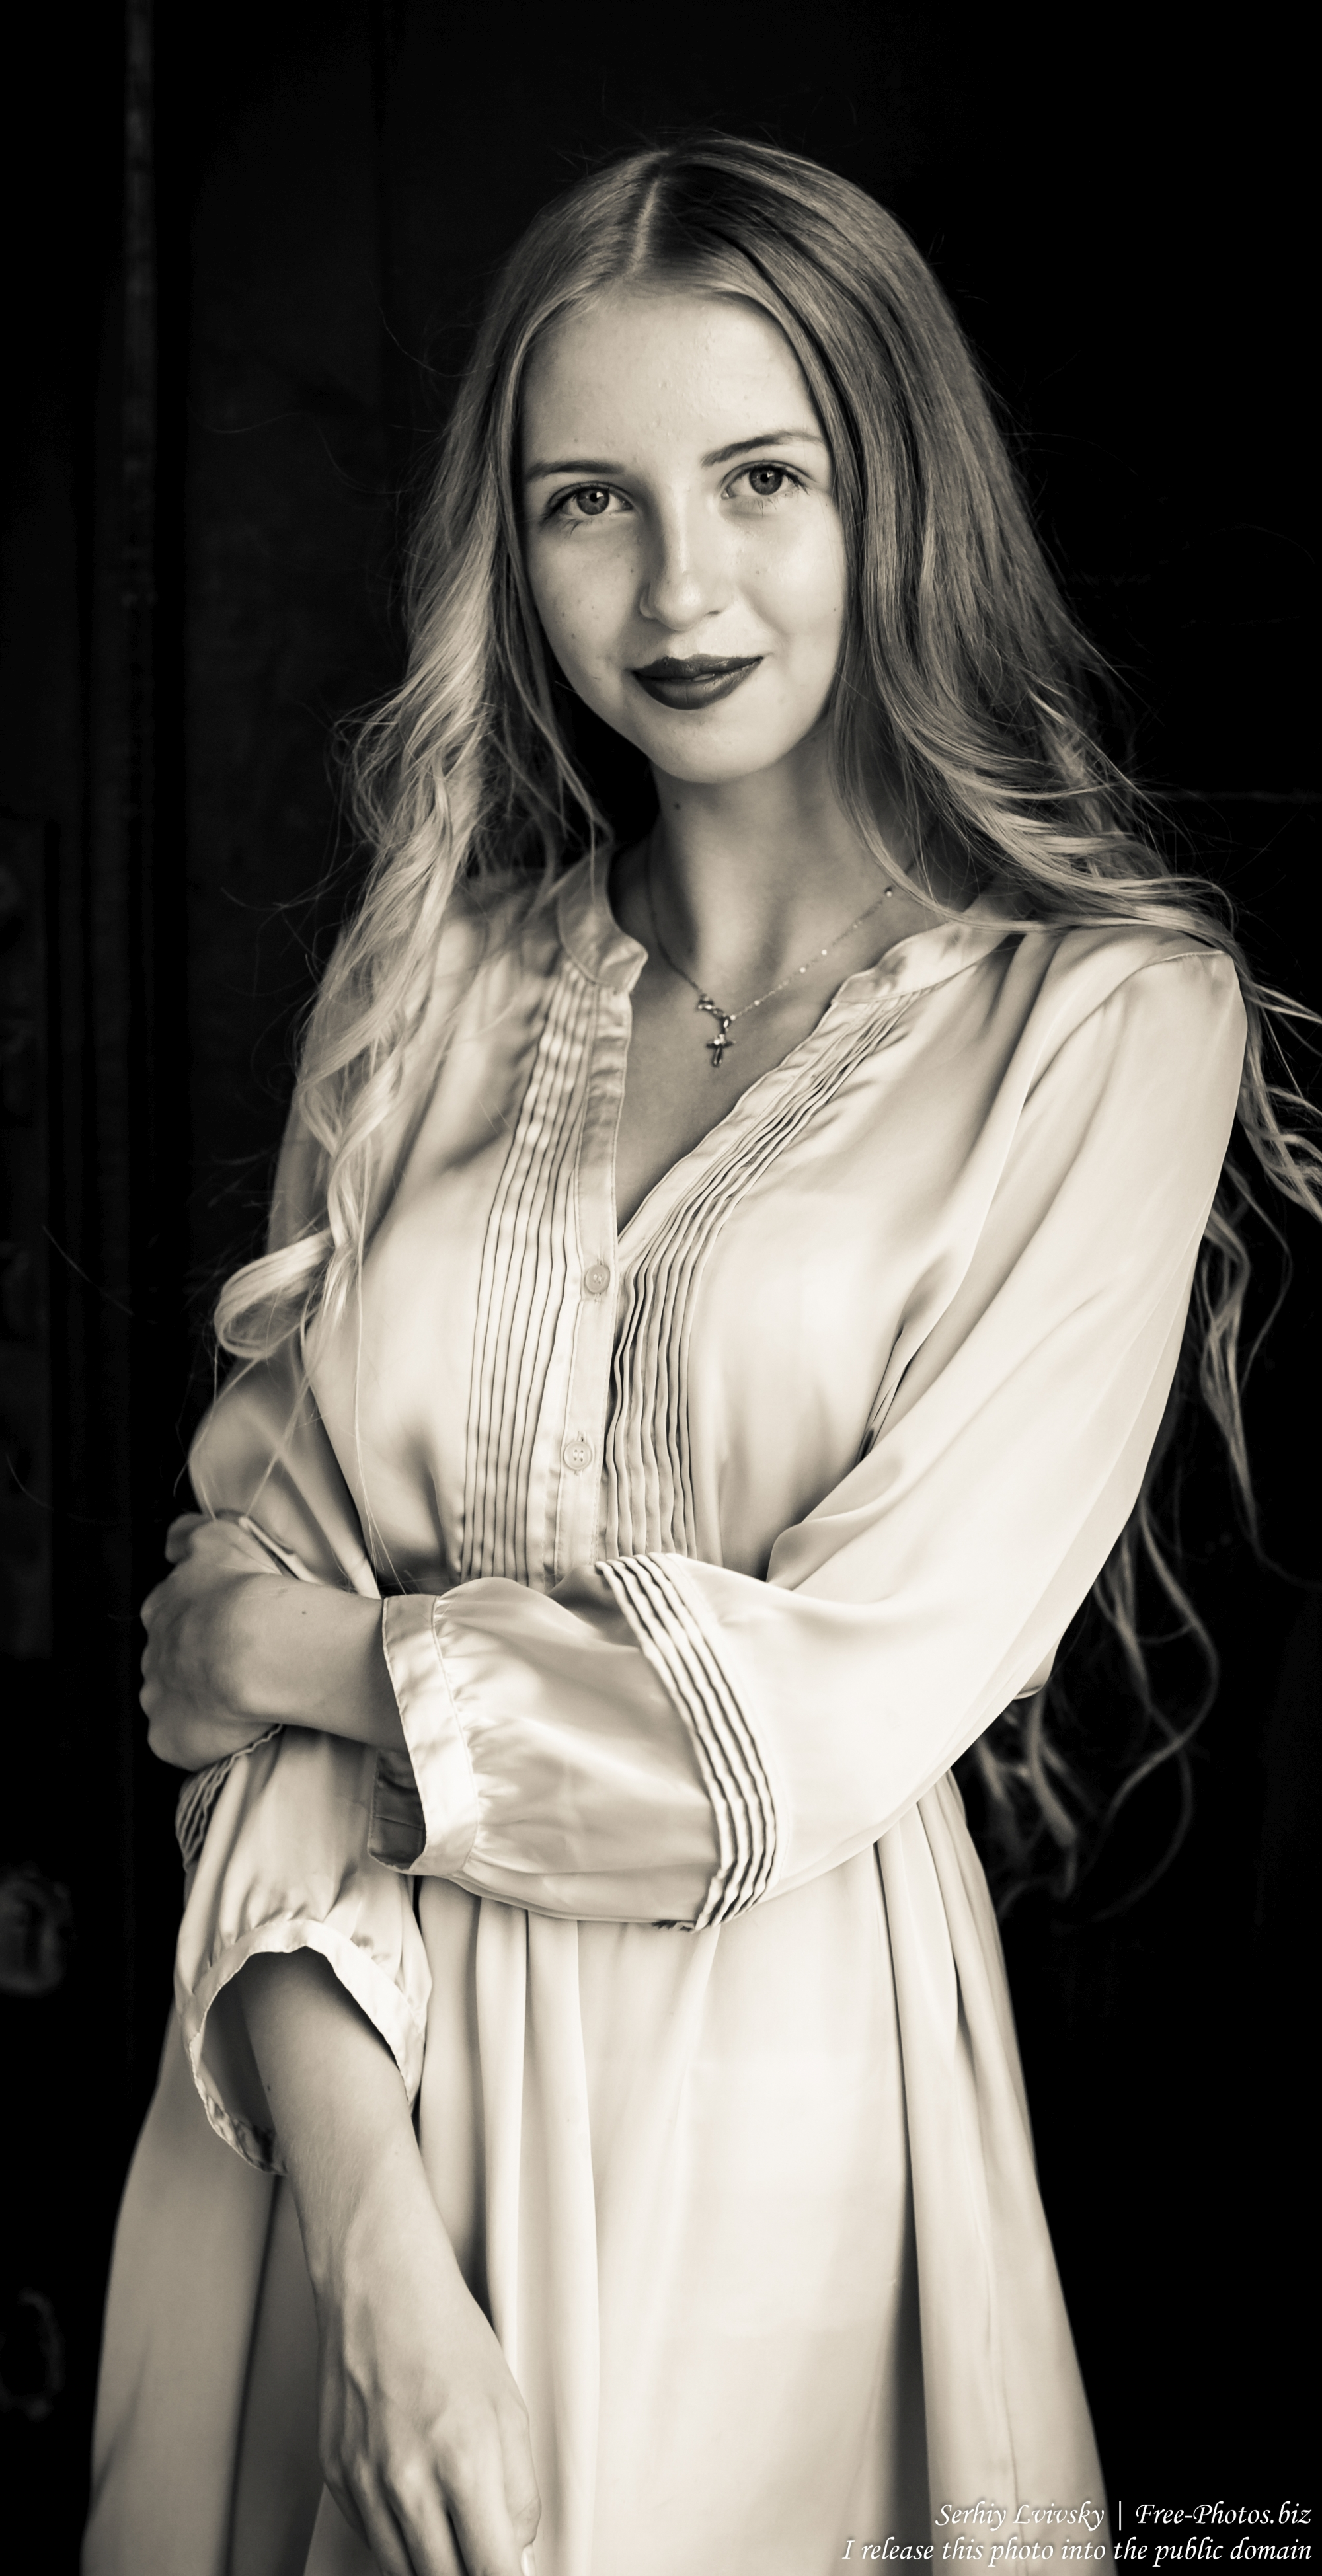 ania_a_14-year-old_natural_blonde_girl_photographed_by_serhiy_lvivsky_in_august_2017_24